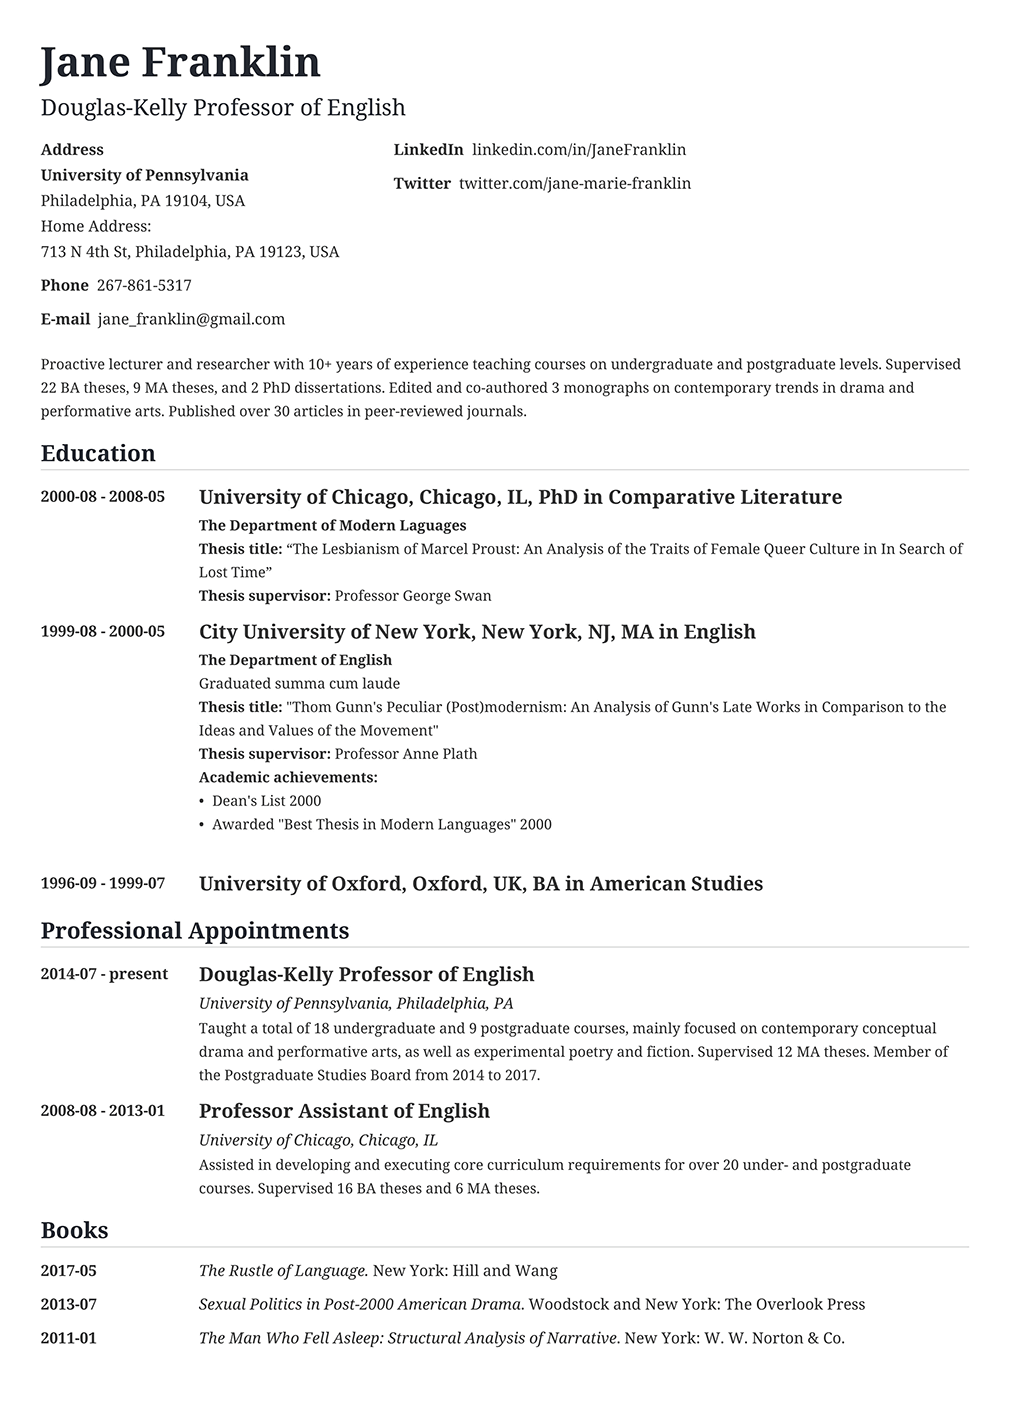 500 Cv Examples A Curriculum Vitae For Any Job Application